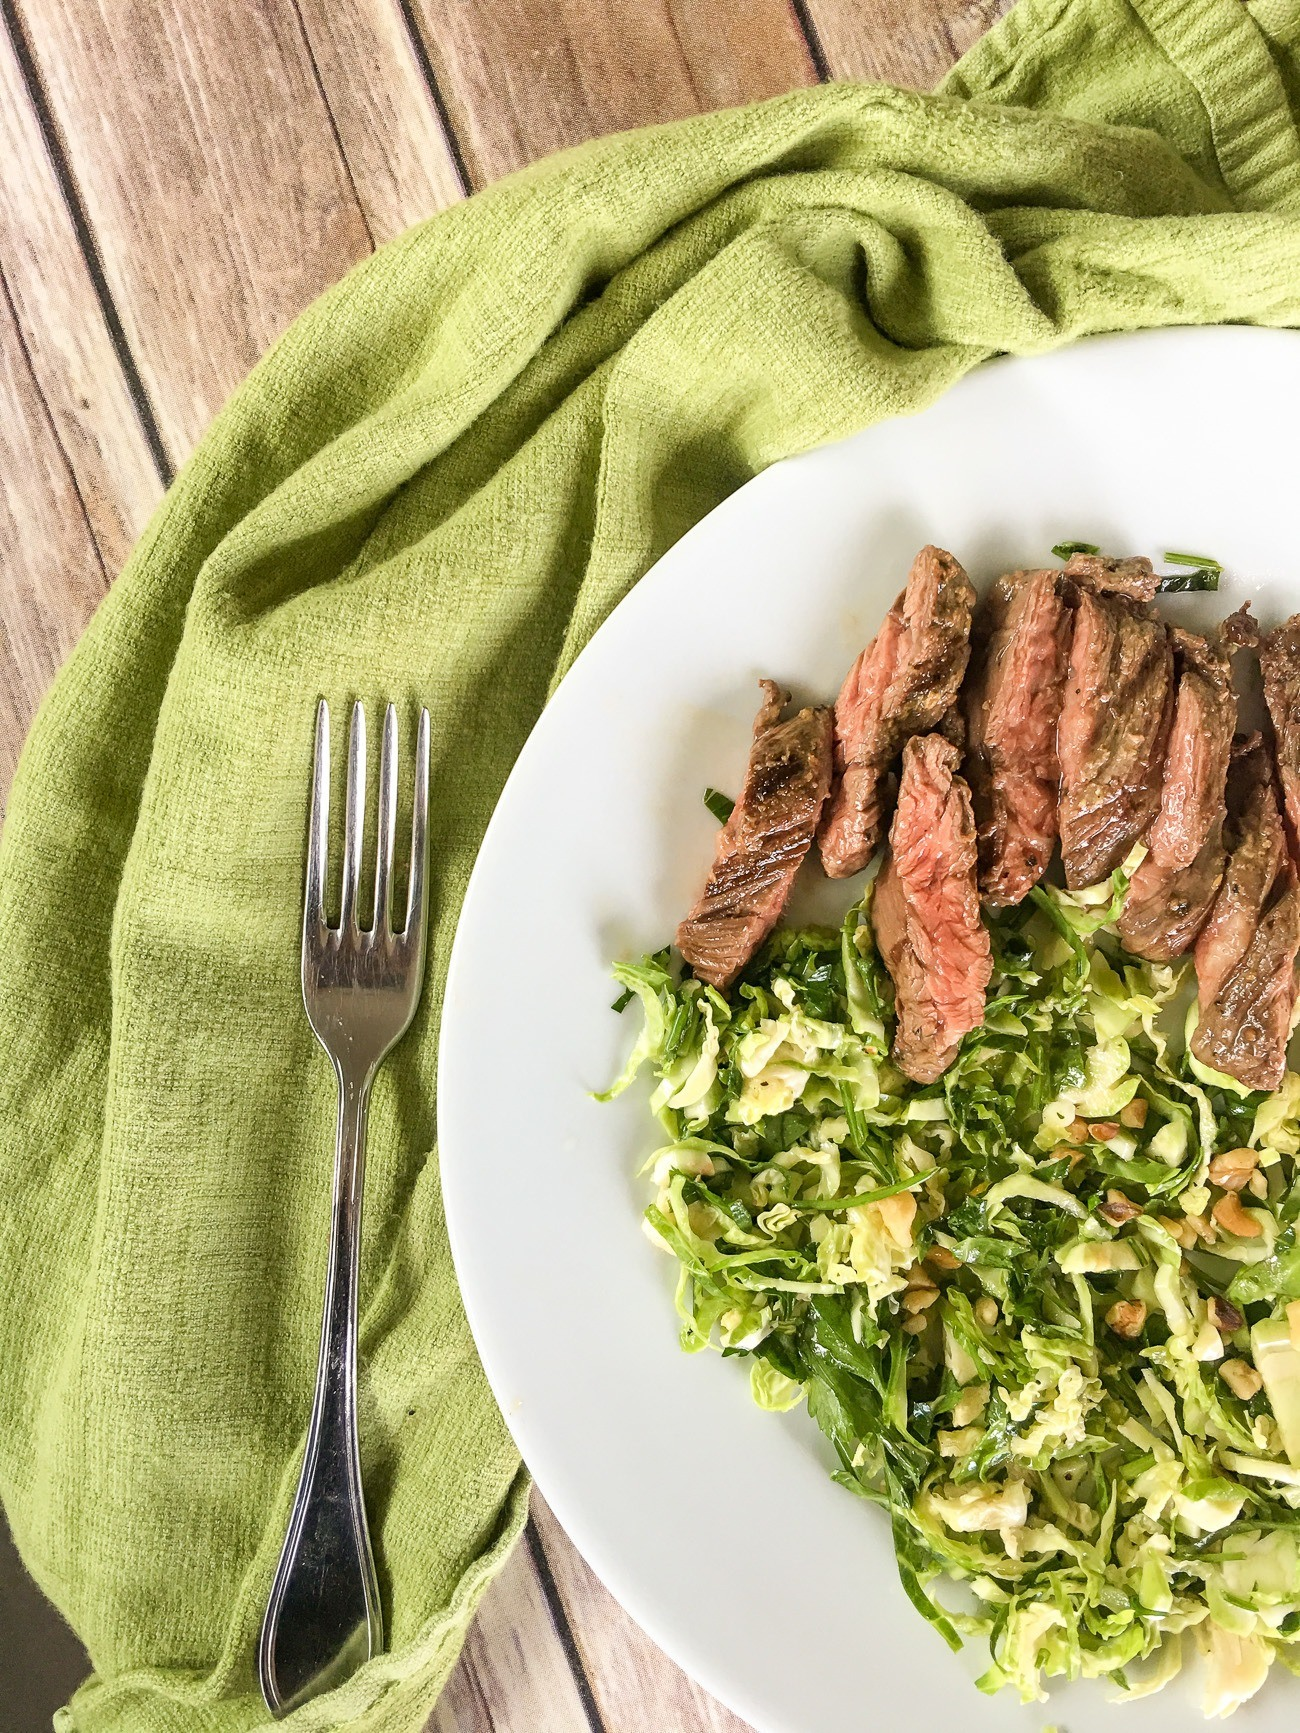 Skirt steak with Brussels sprouts from Terra's Kitchen meal delivery service.